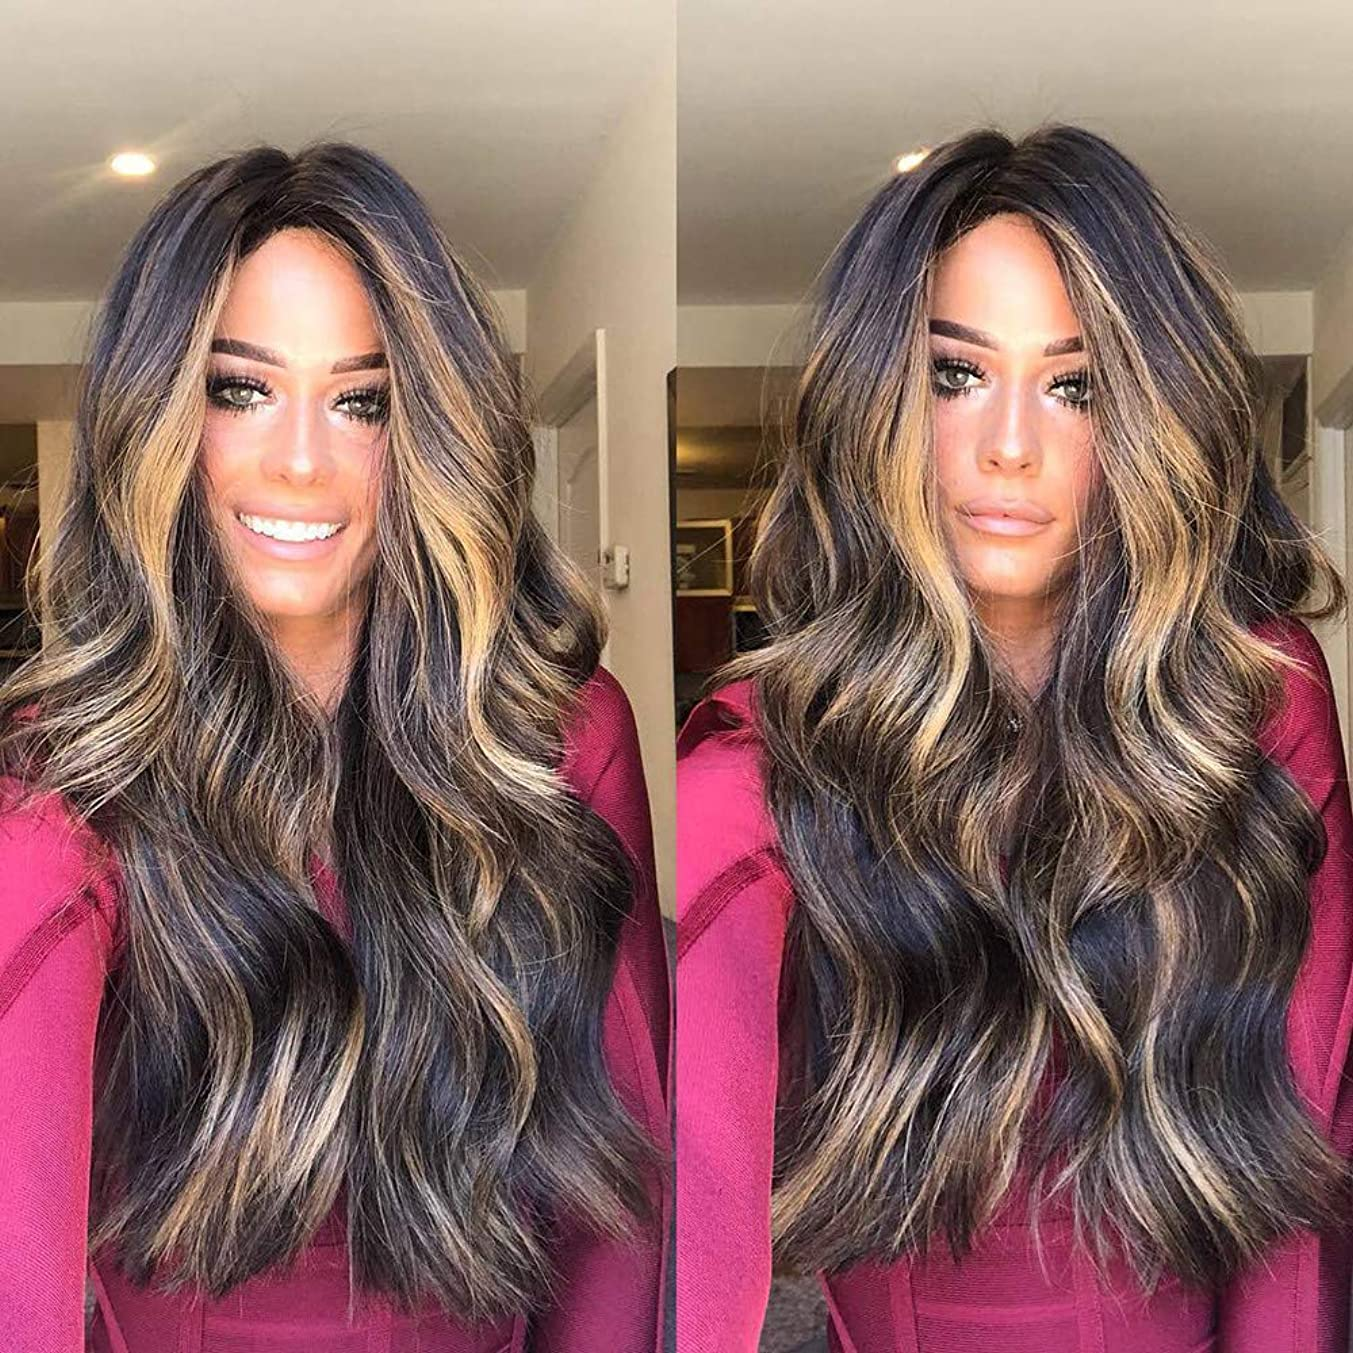 ????Clearance???? 28'' Long Curly Wig for Women Synthetic Middle Part Wig for Black Women Natural Black Wig for Daily Use Heat